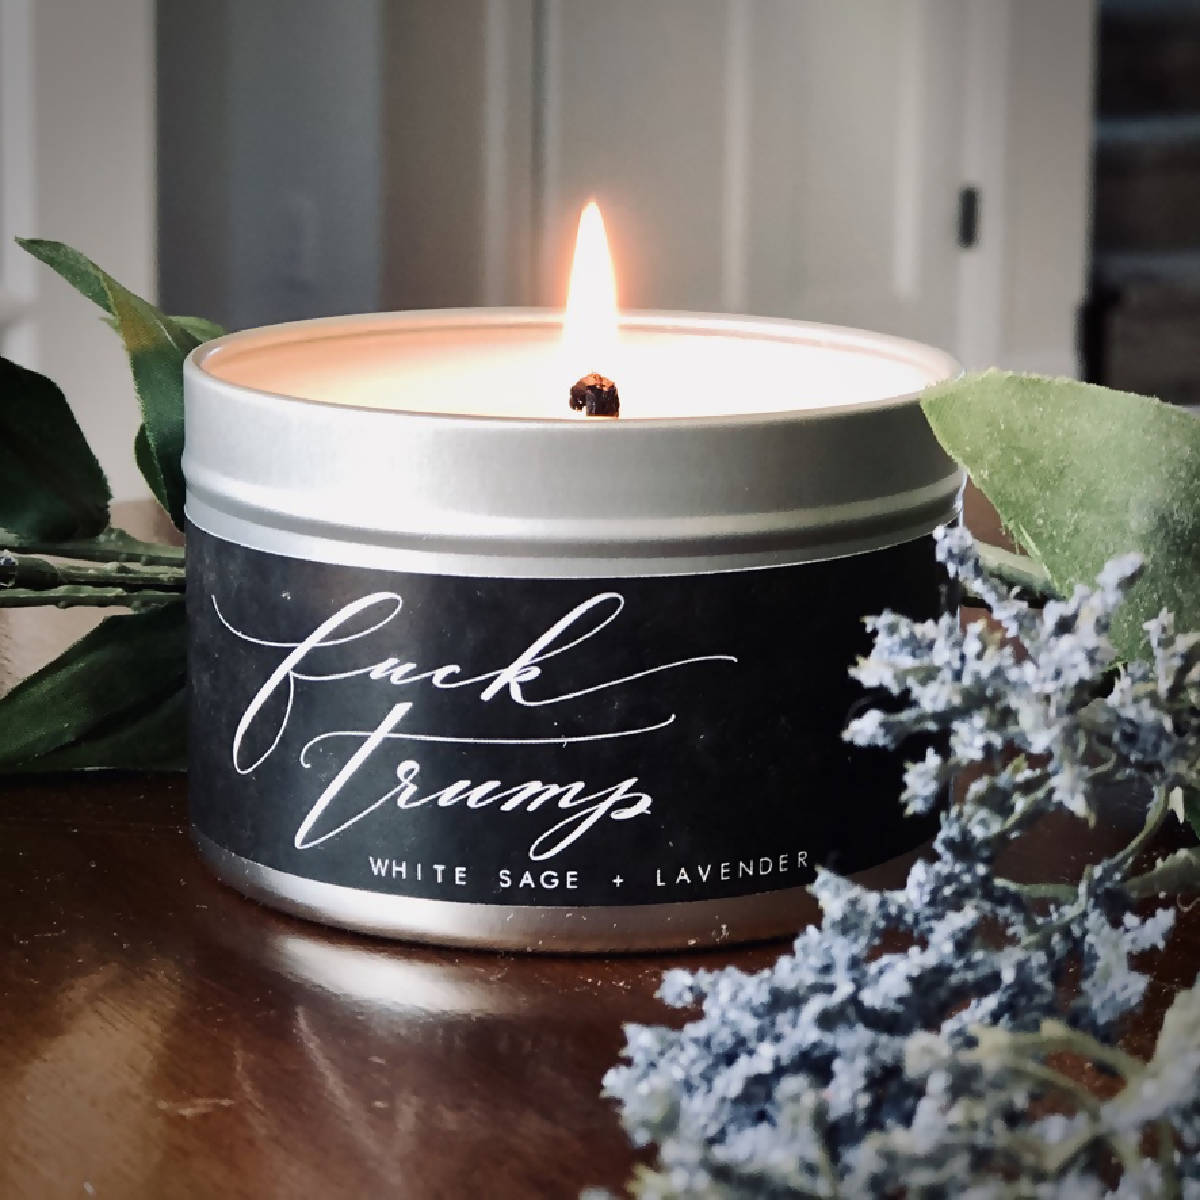 Fuck Trump White Sage + Lavender Natural Soy Candle